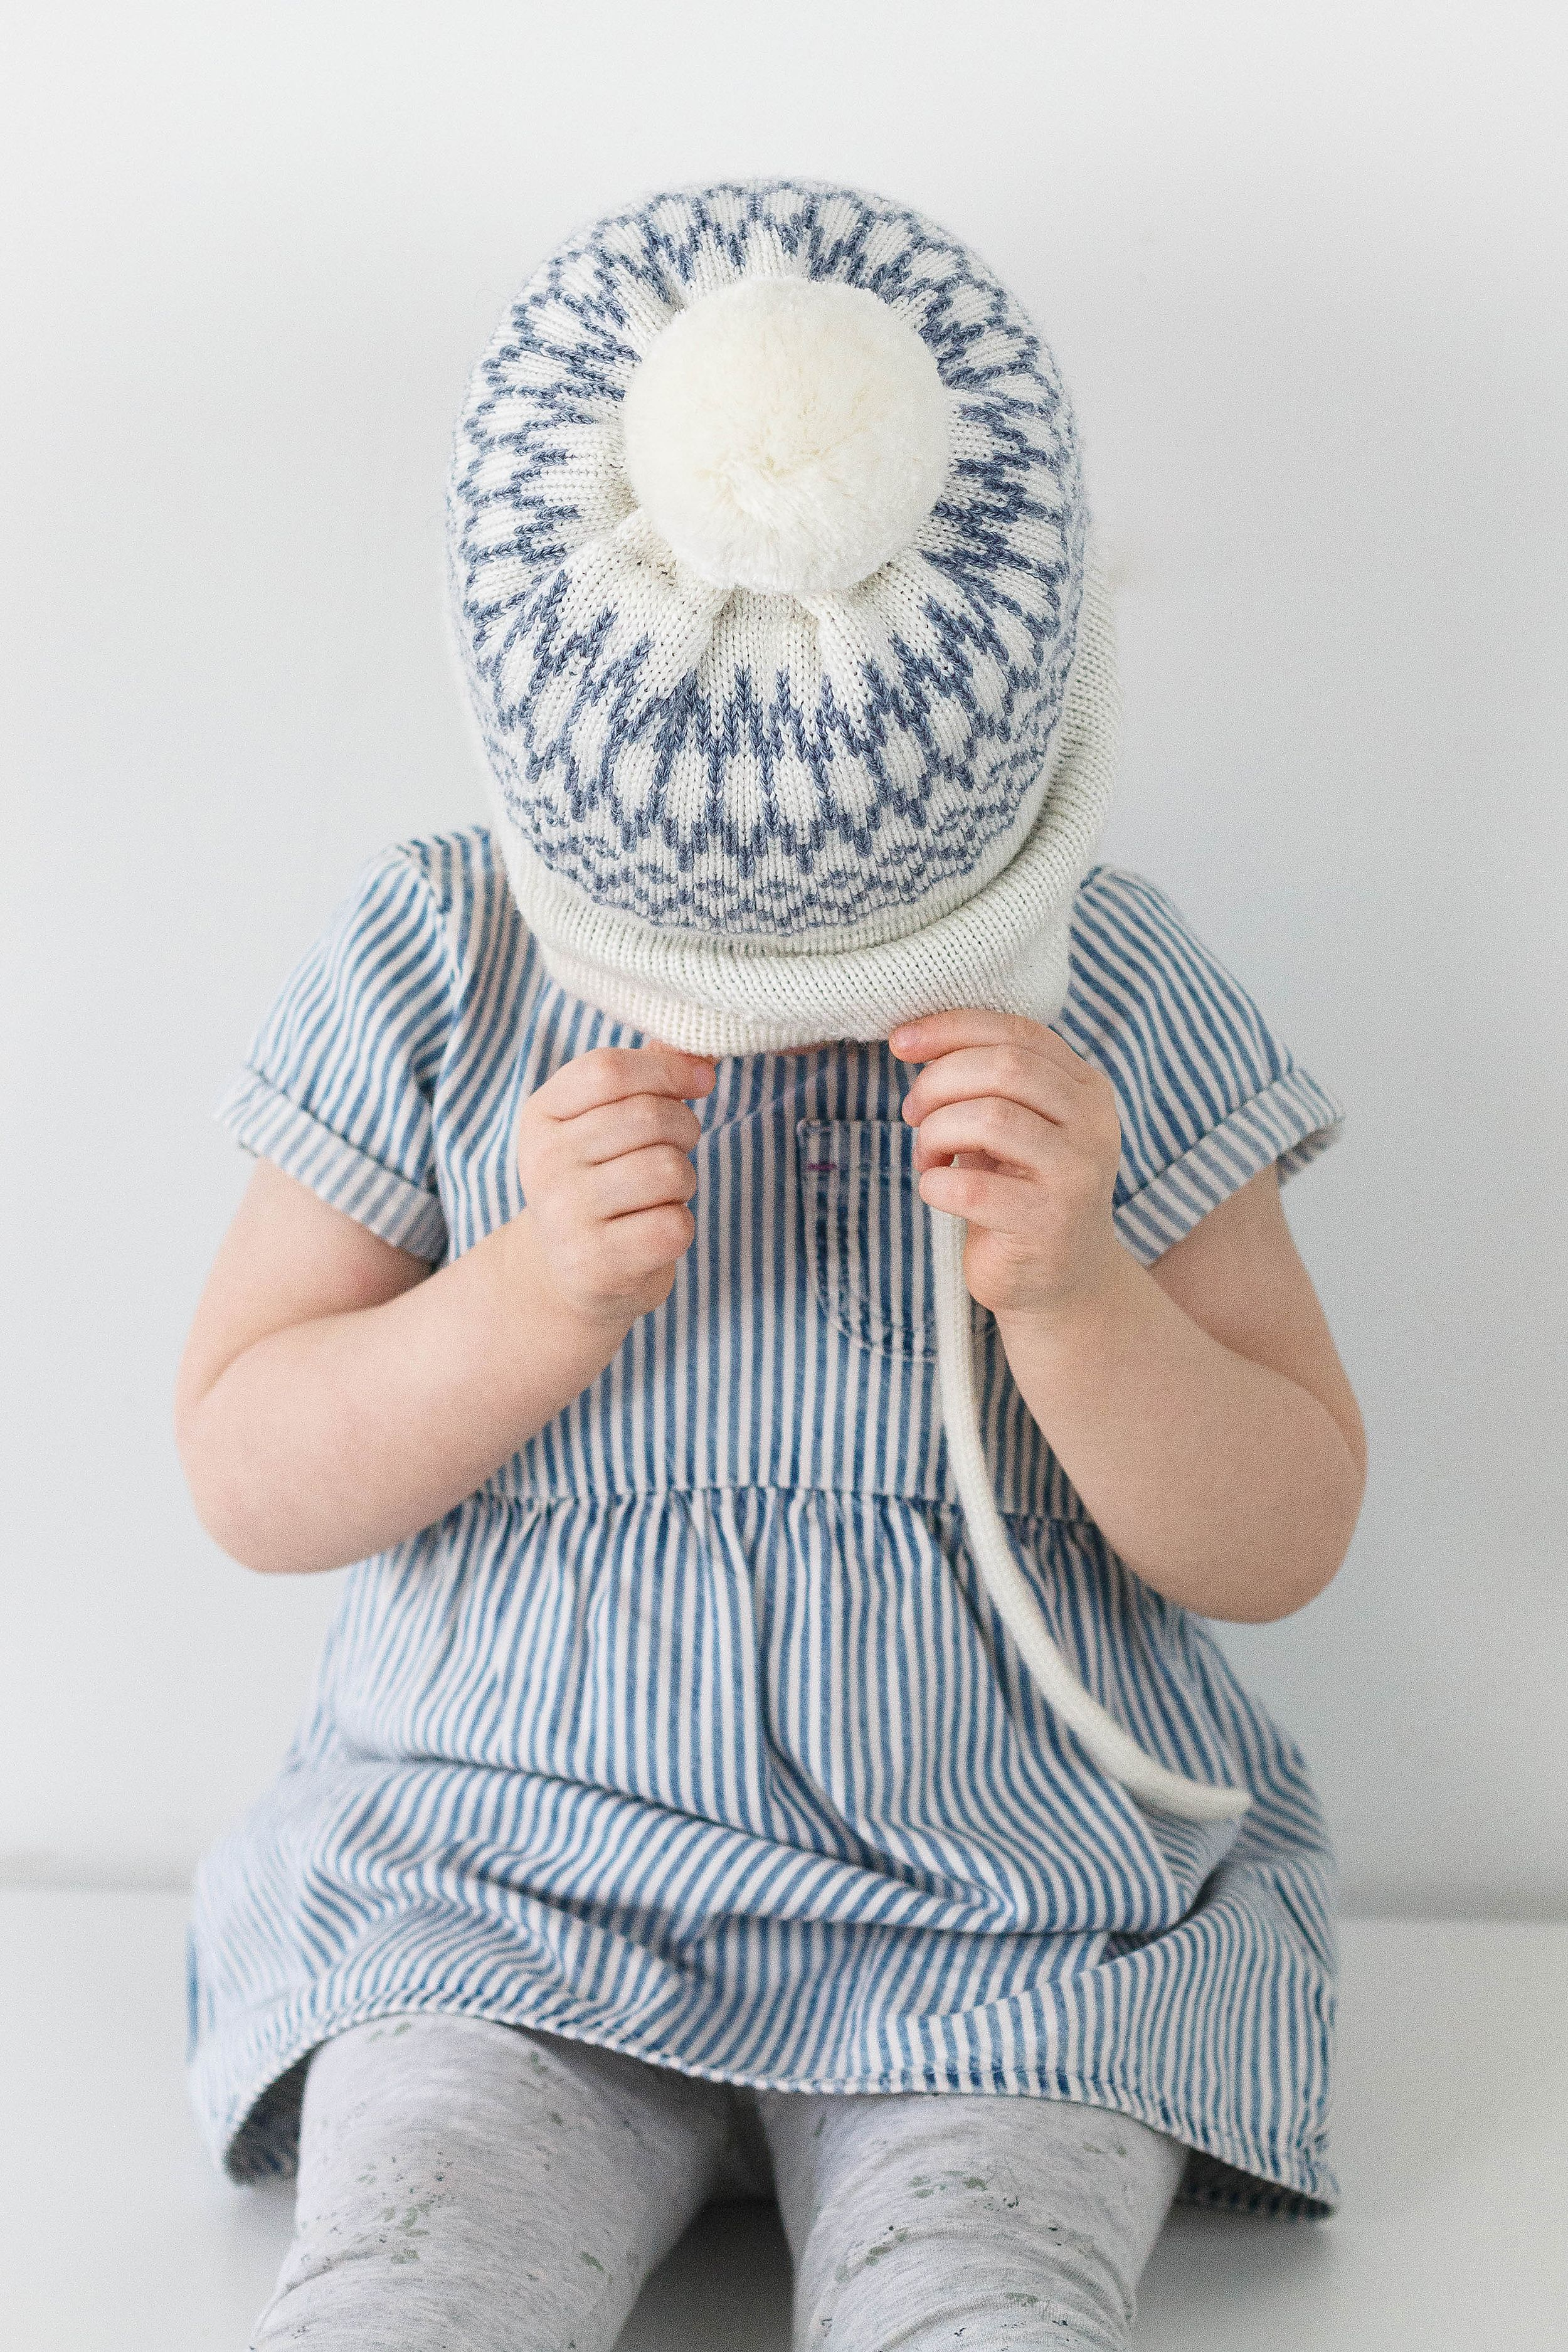 Personalized Ear Flap Knit Hat For Kids With Name Custom Etsy Knitted Hats Kids Knitted Hats Kids Winter Hats